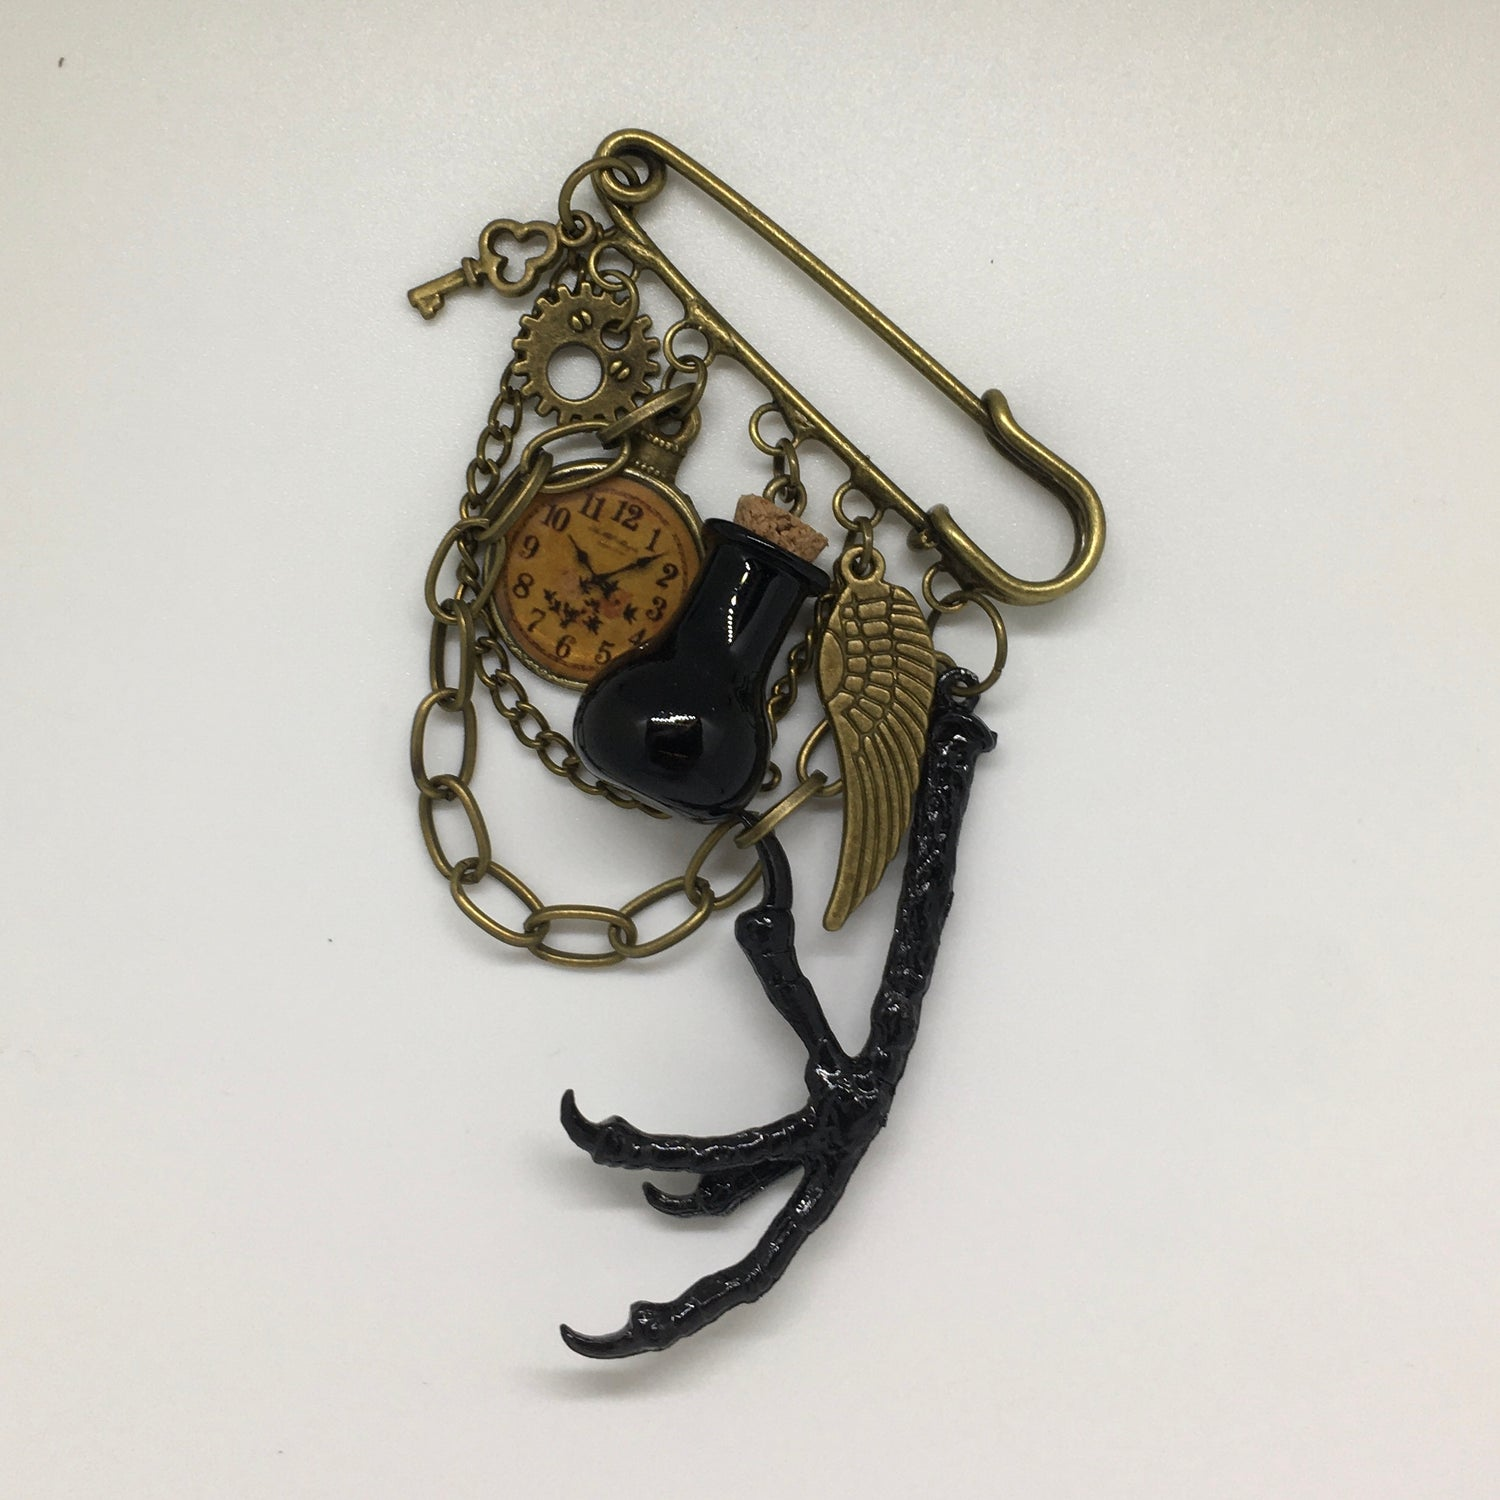 Military style Raven Claw steampunk kilt pin brooch